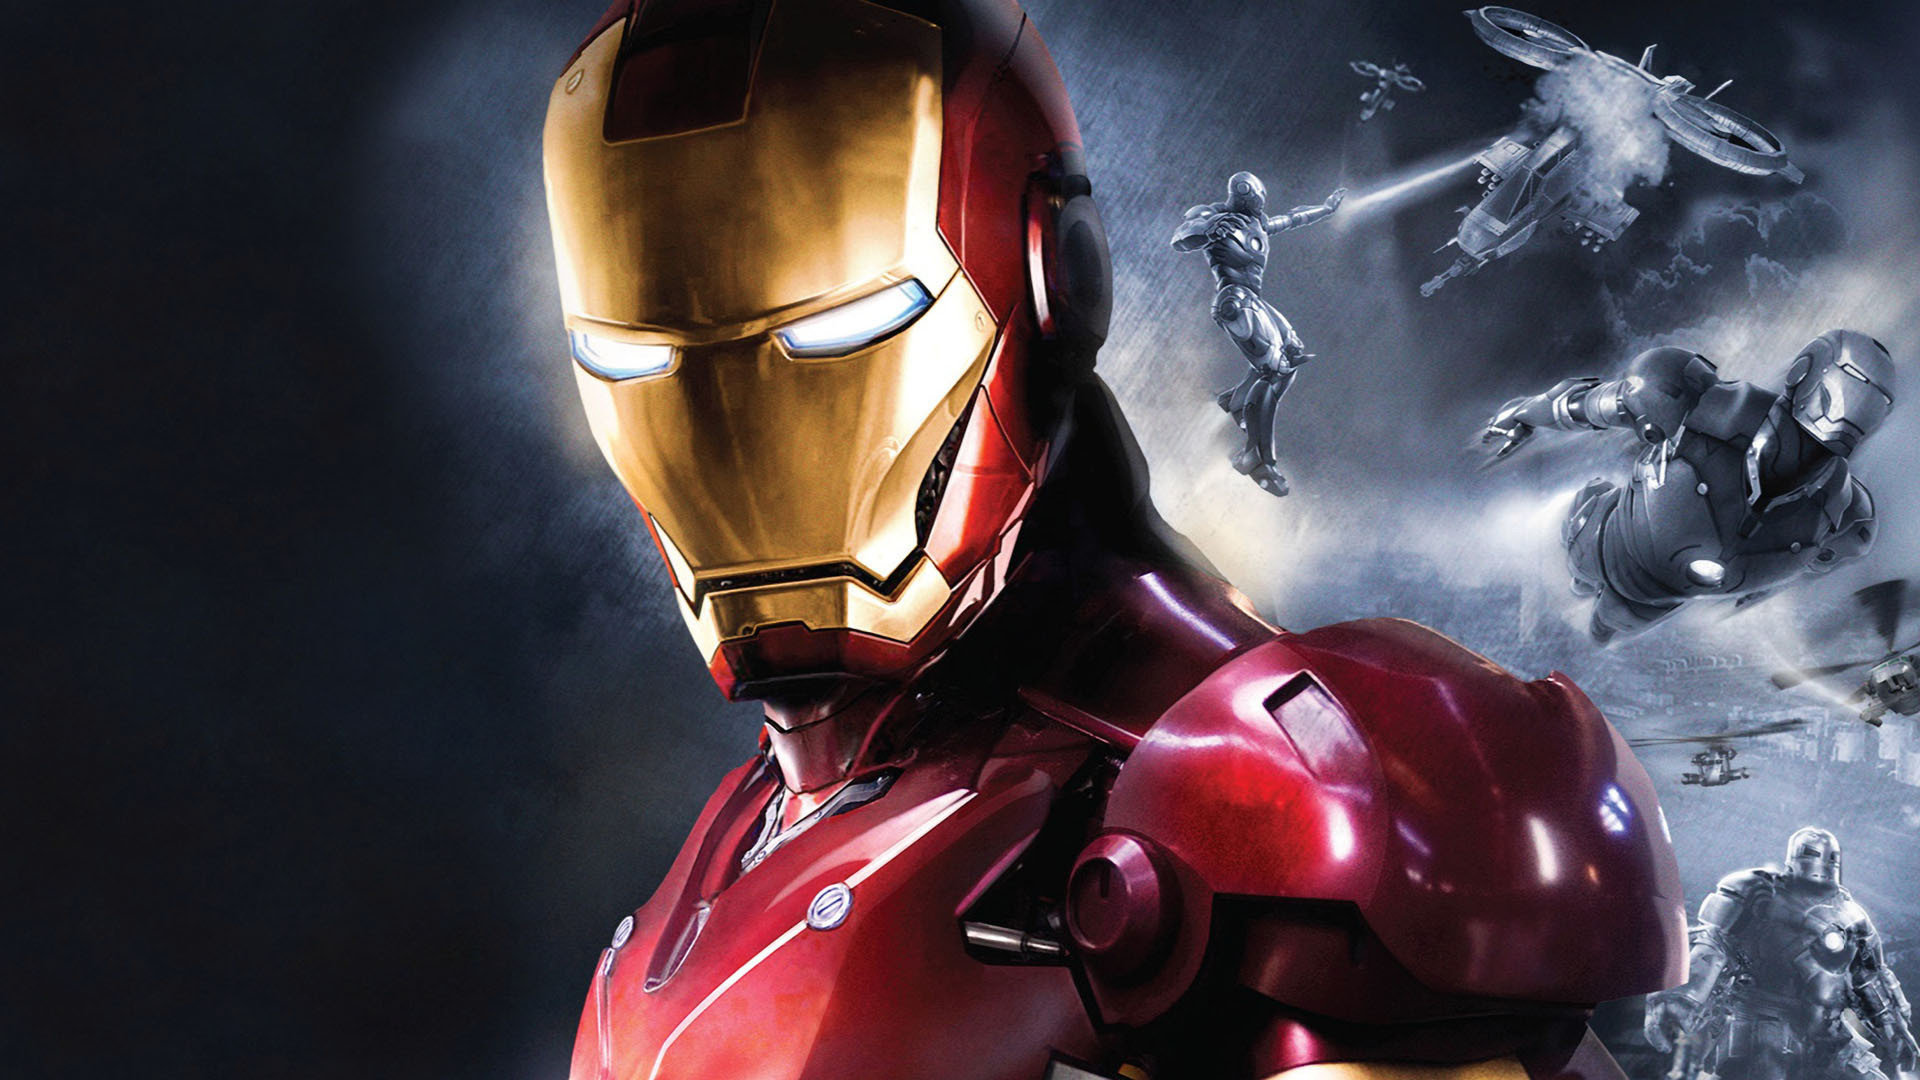 Free download Iron Man background ID:60 full hd 1080p for desktop